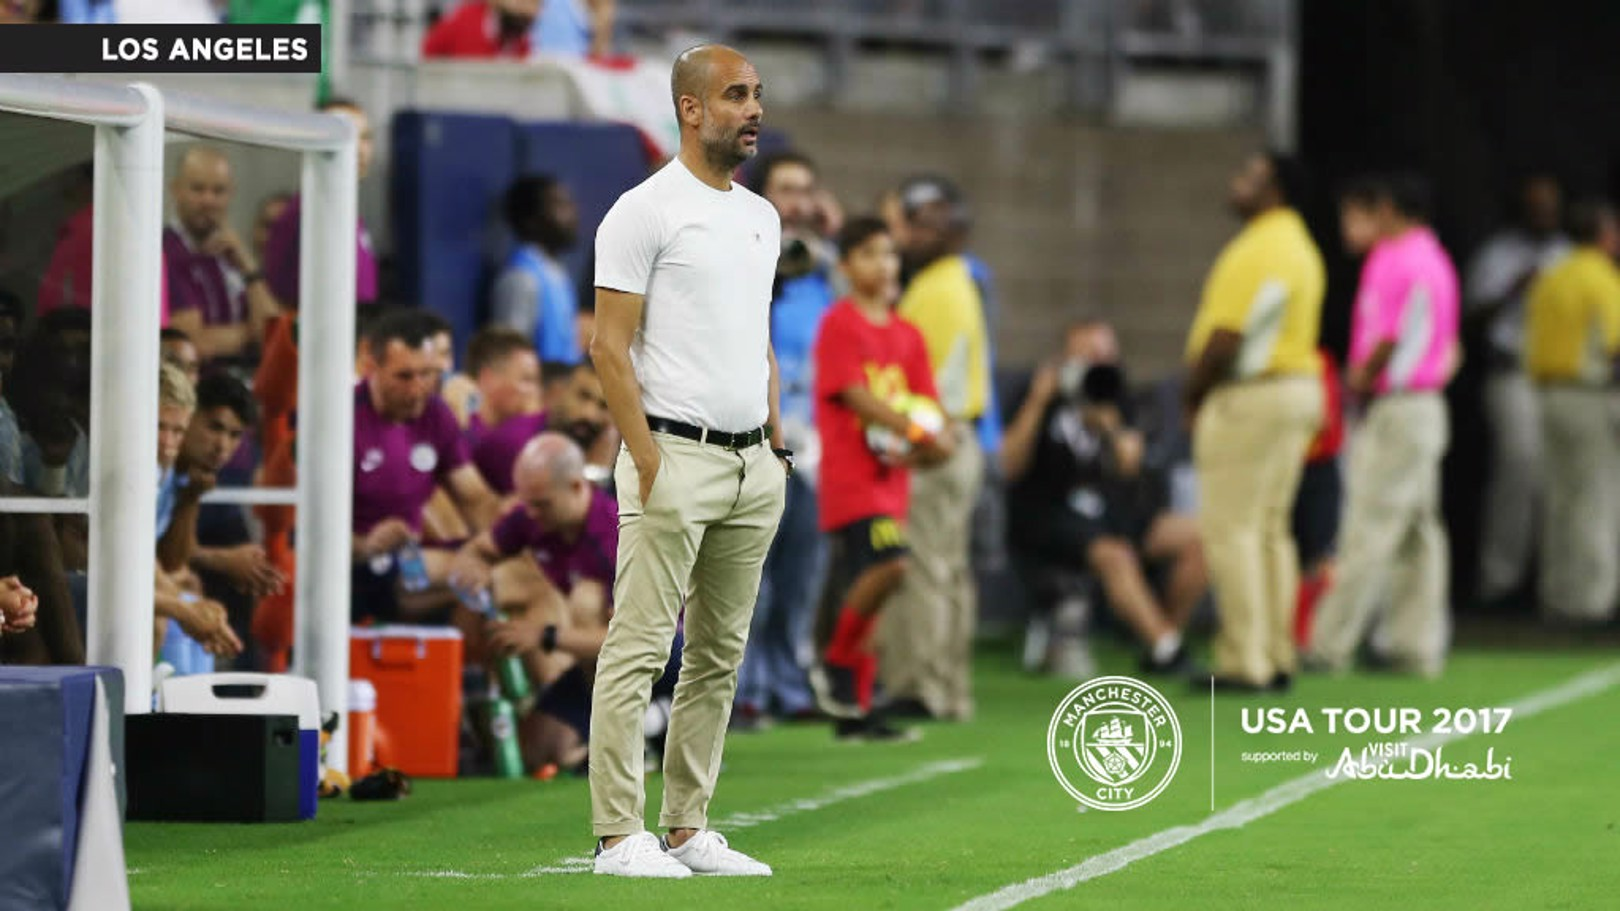 PEP GUARDIOLA: The boss has spoken ahead of the Real Madrid game